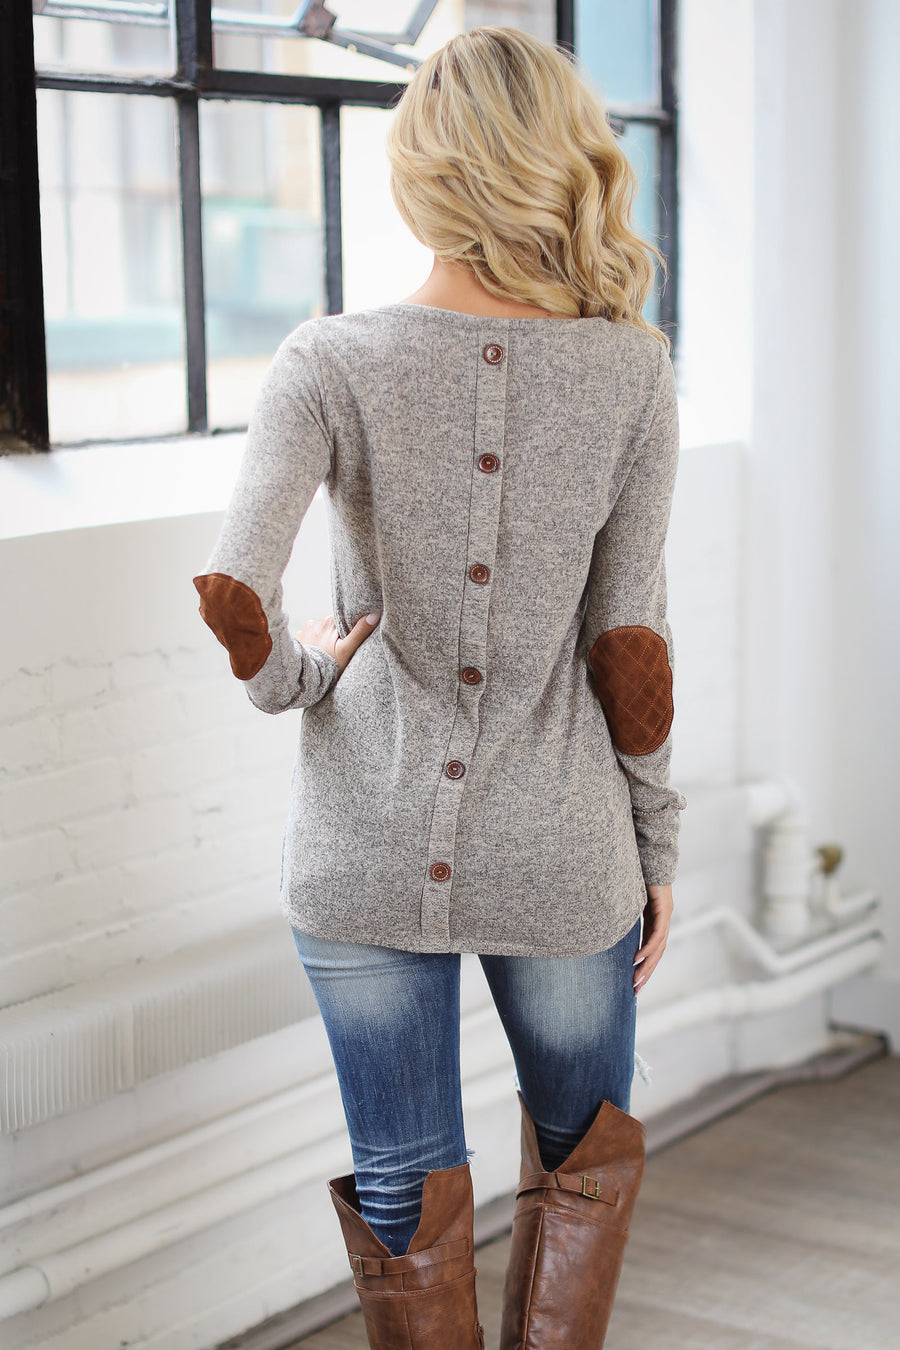 Simple Joys Sweater - taupe elbow patch sweater, side, cute fall outfit, Closet Candy Boutique 1